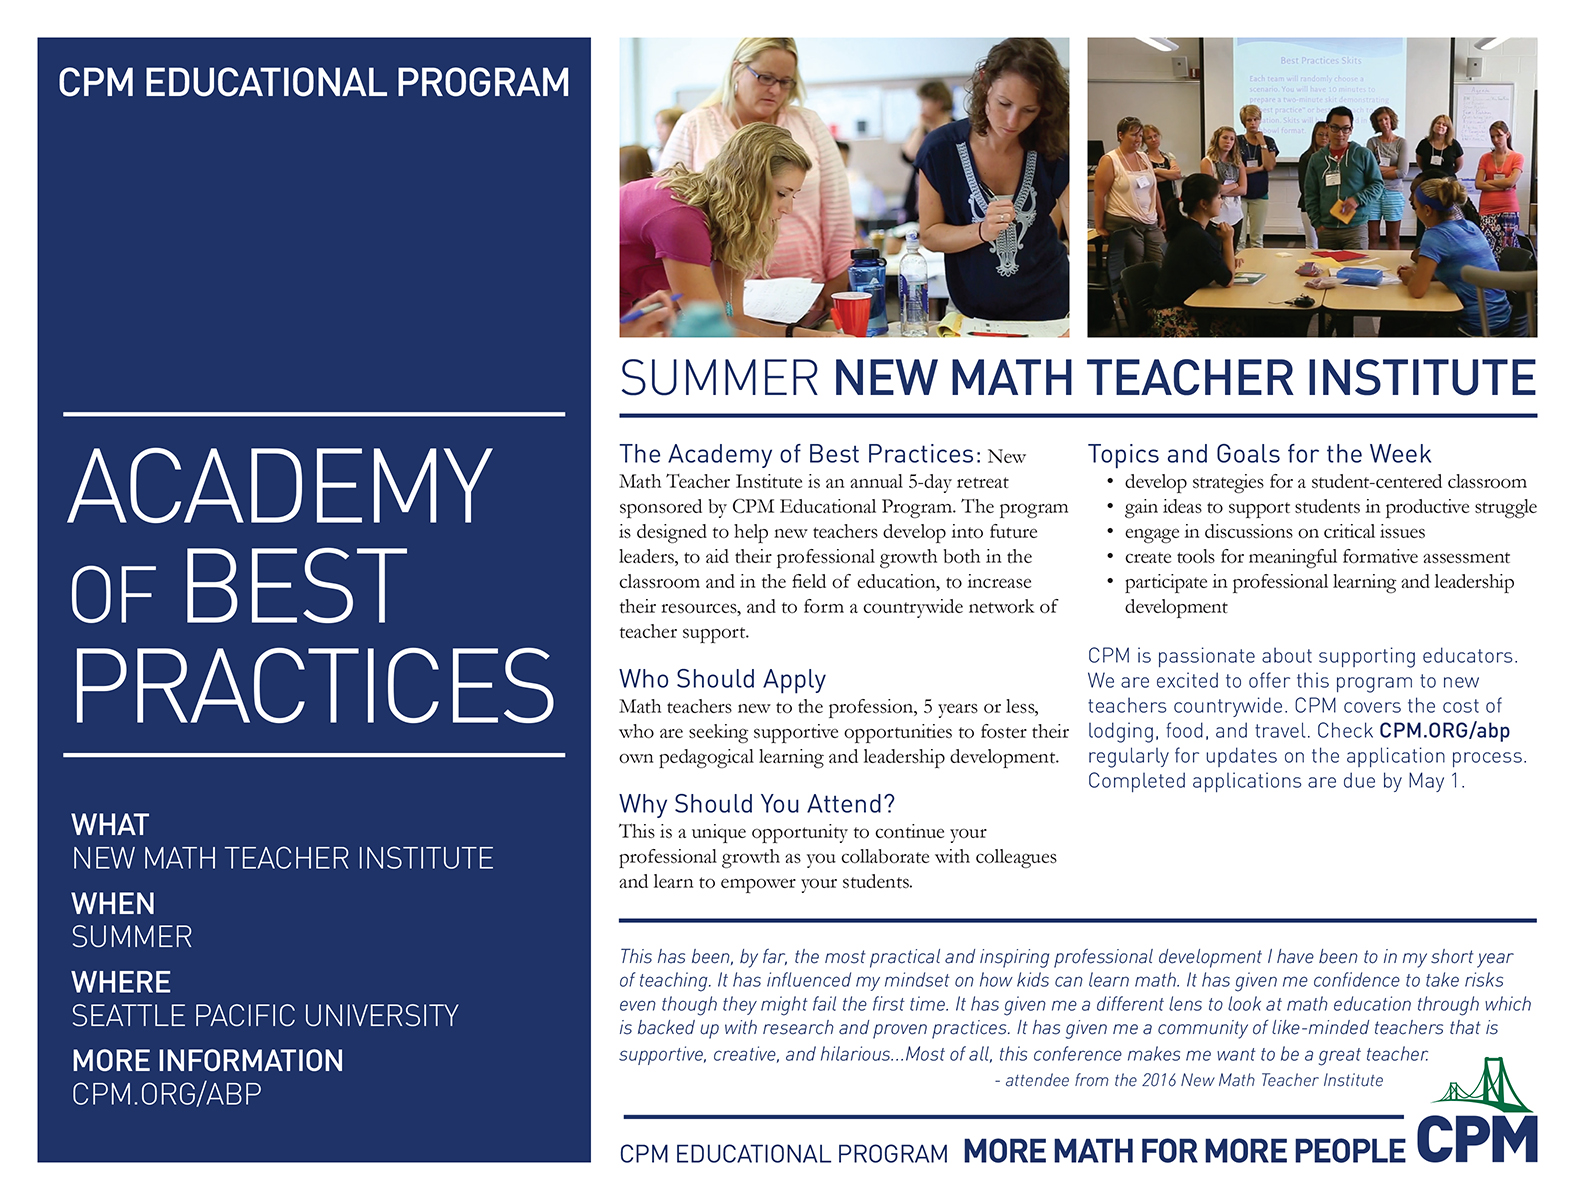 Academy of Best Practices New Math Teacher Institute Flyer